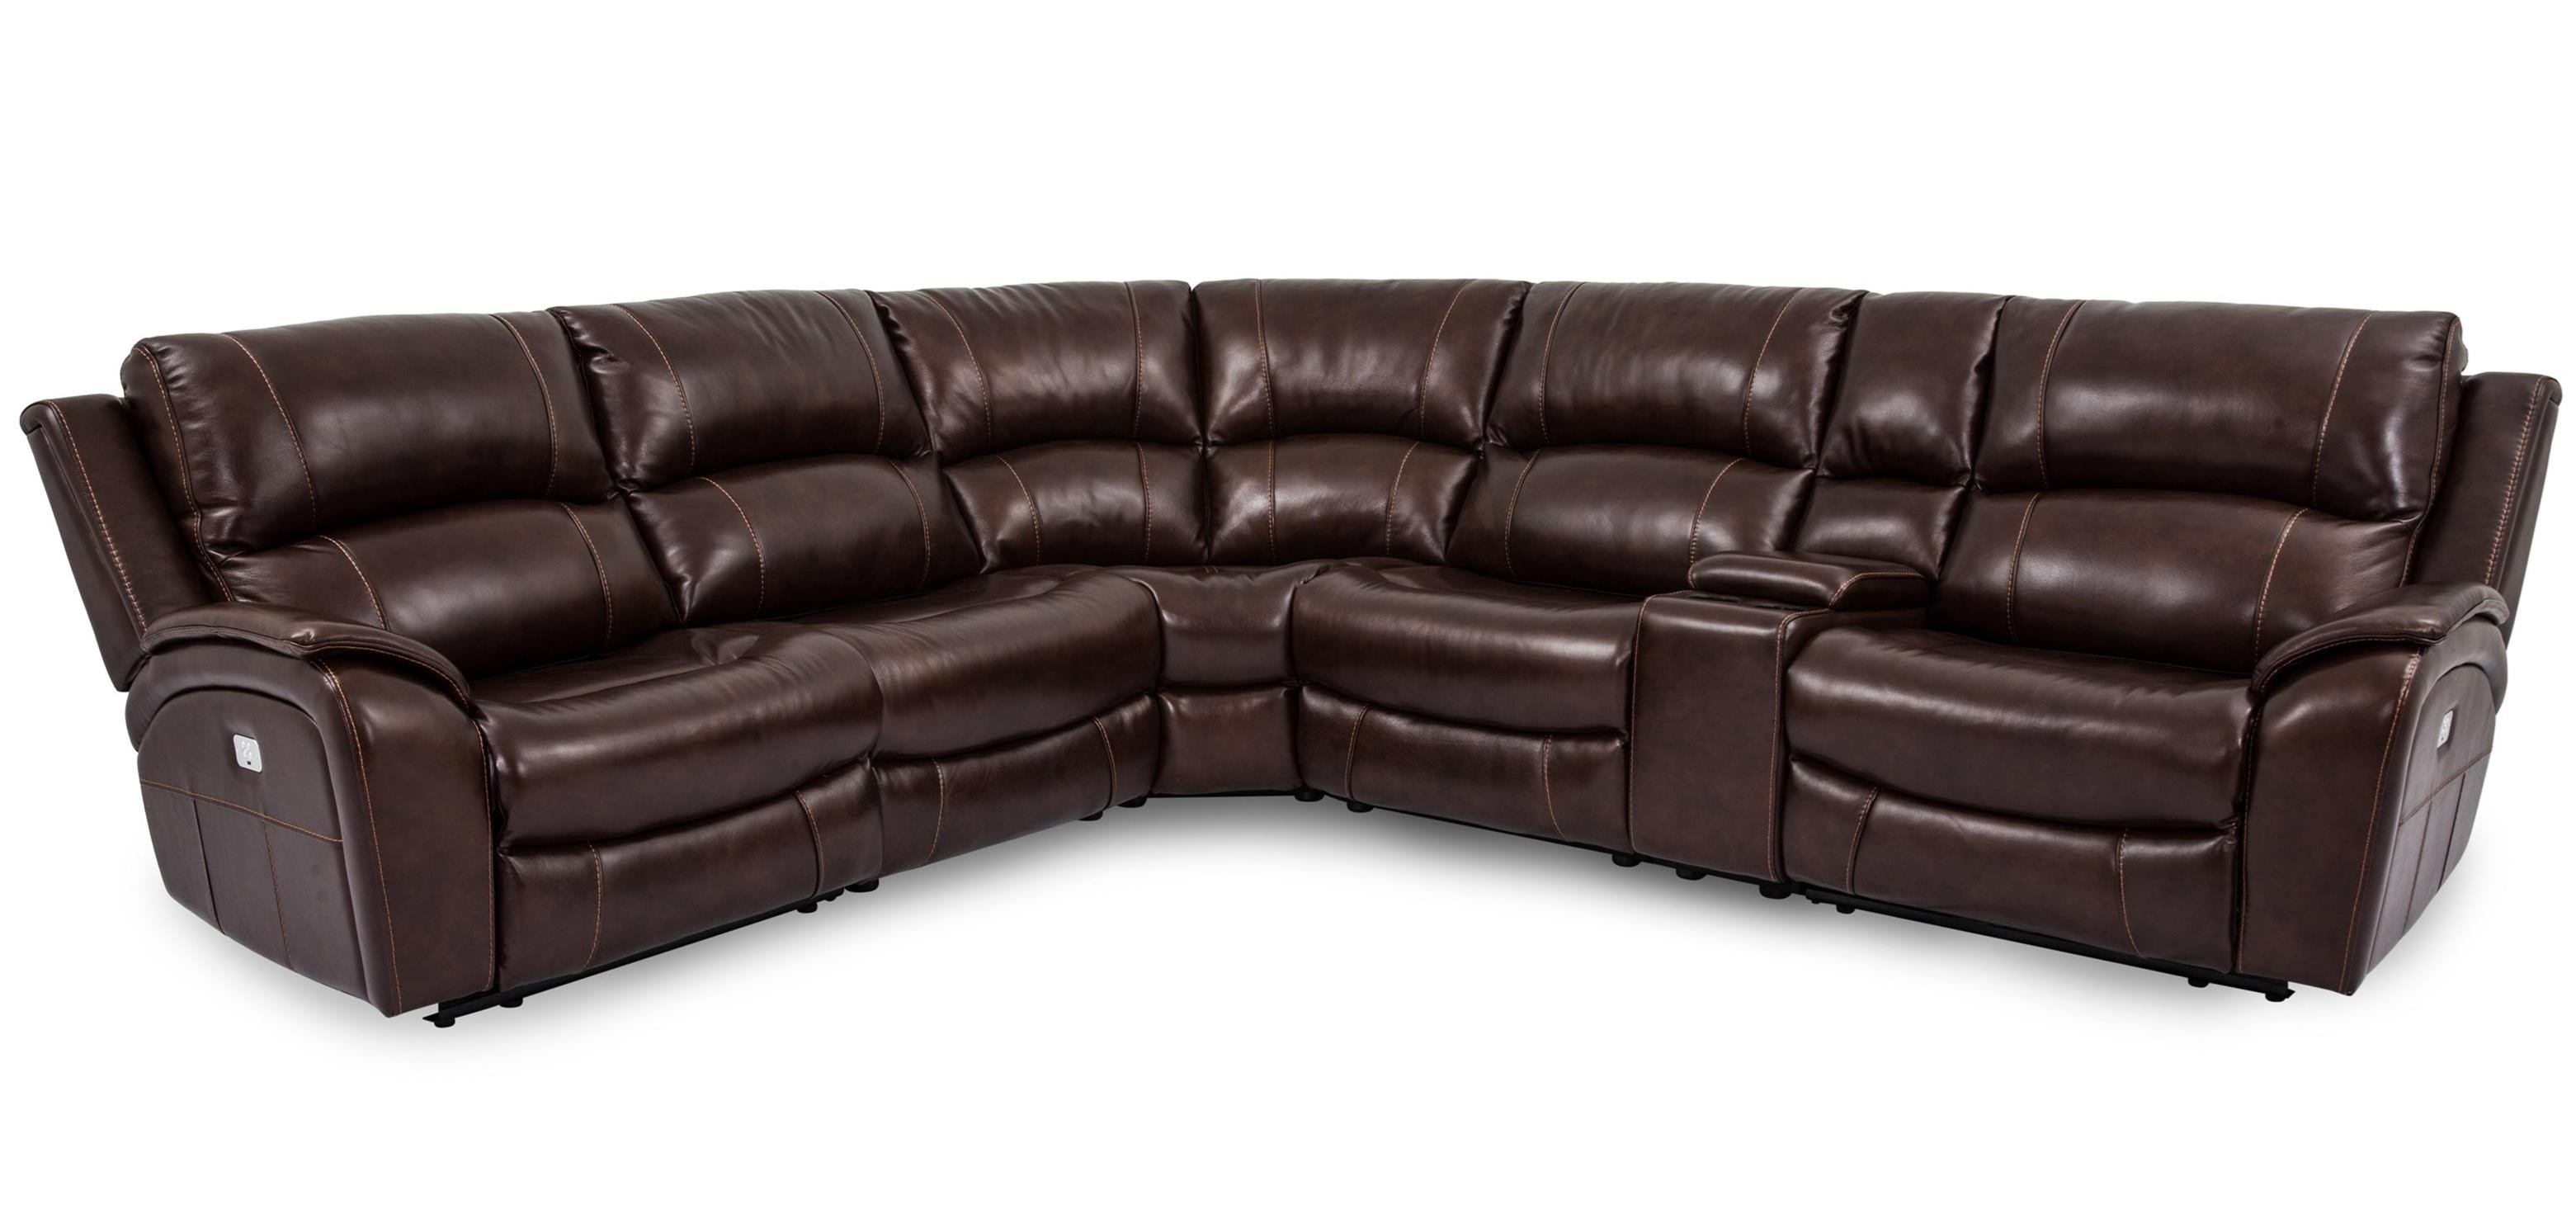 5313 Power Reclining Sectional Sofa by Cheers at Lagniappe Home Store